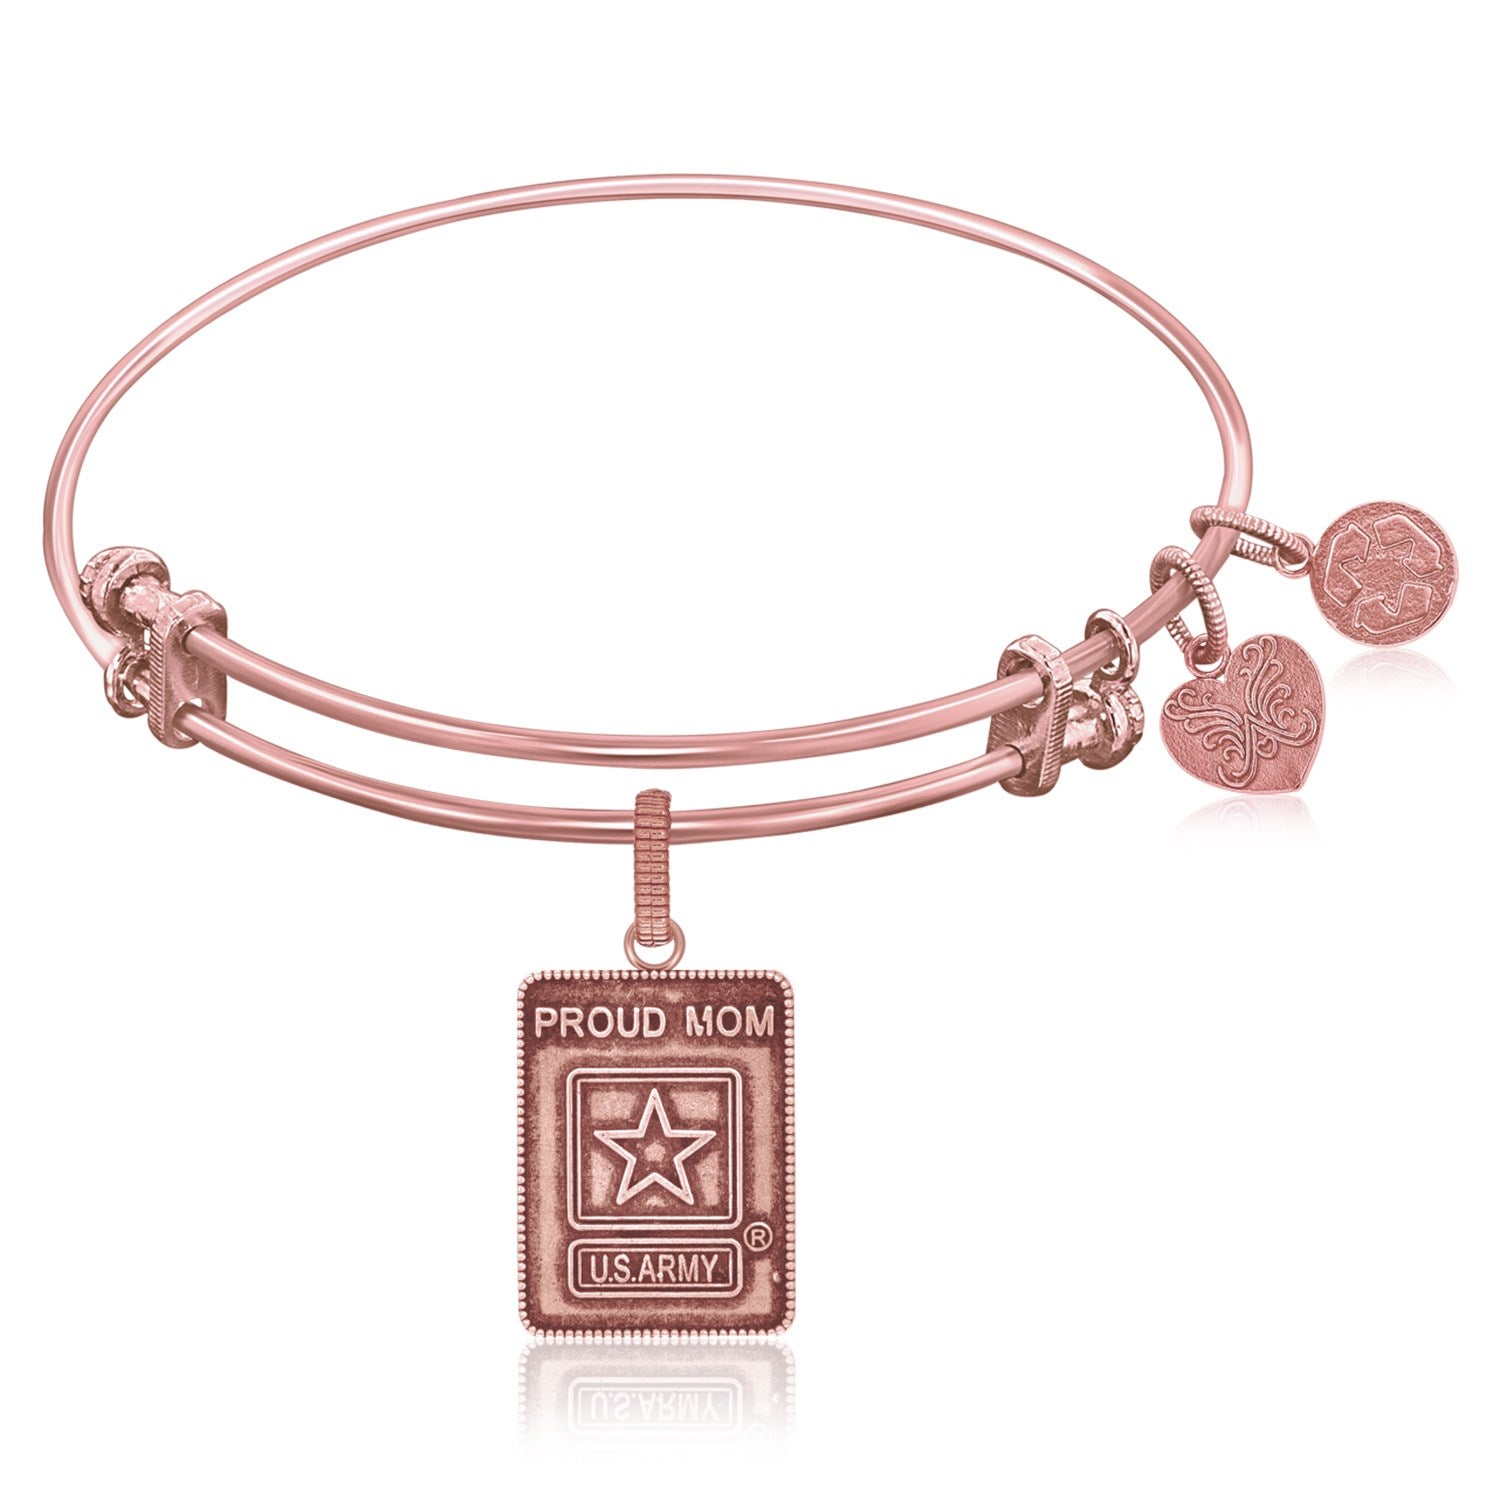 Expandable Bangle in Pink Tone Brass with U.S. Army Proud Mom Symbol